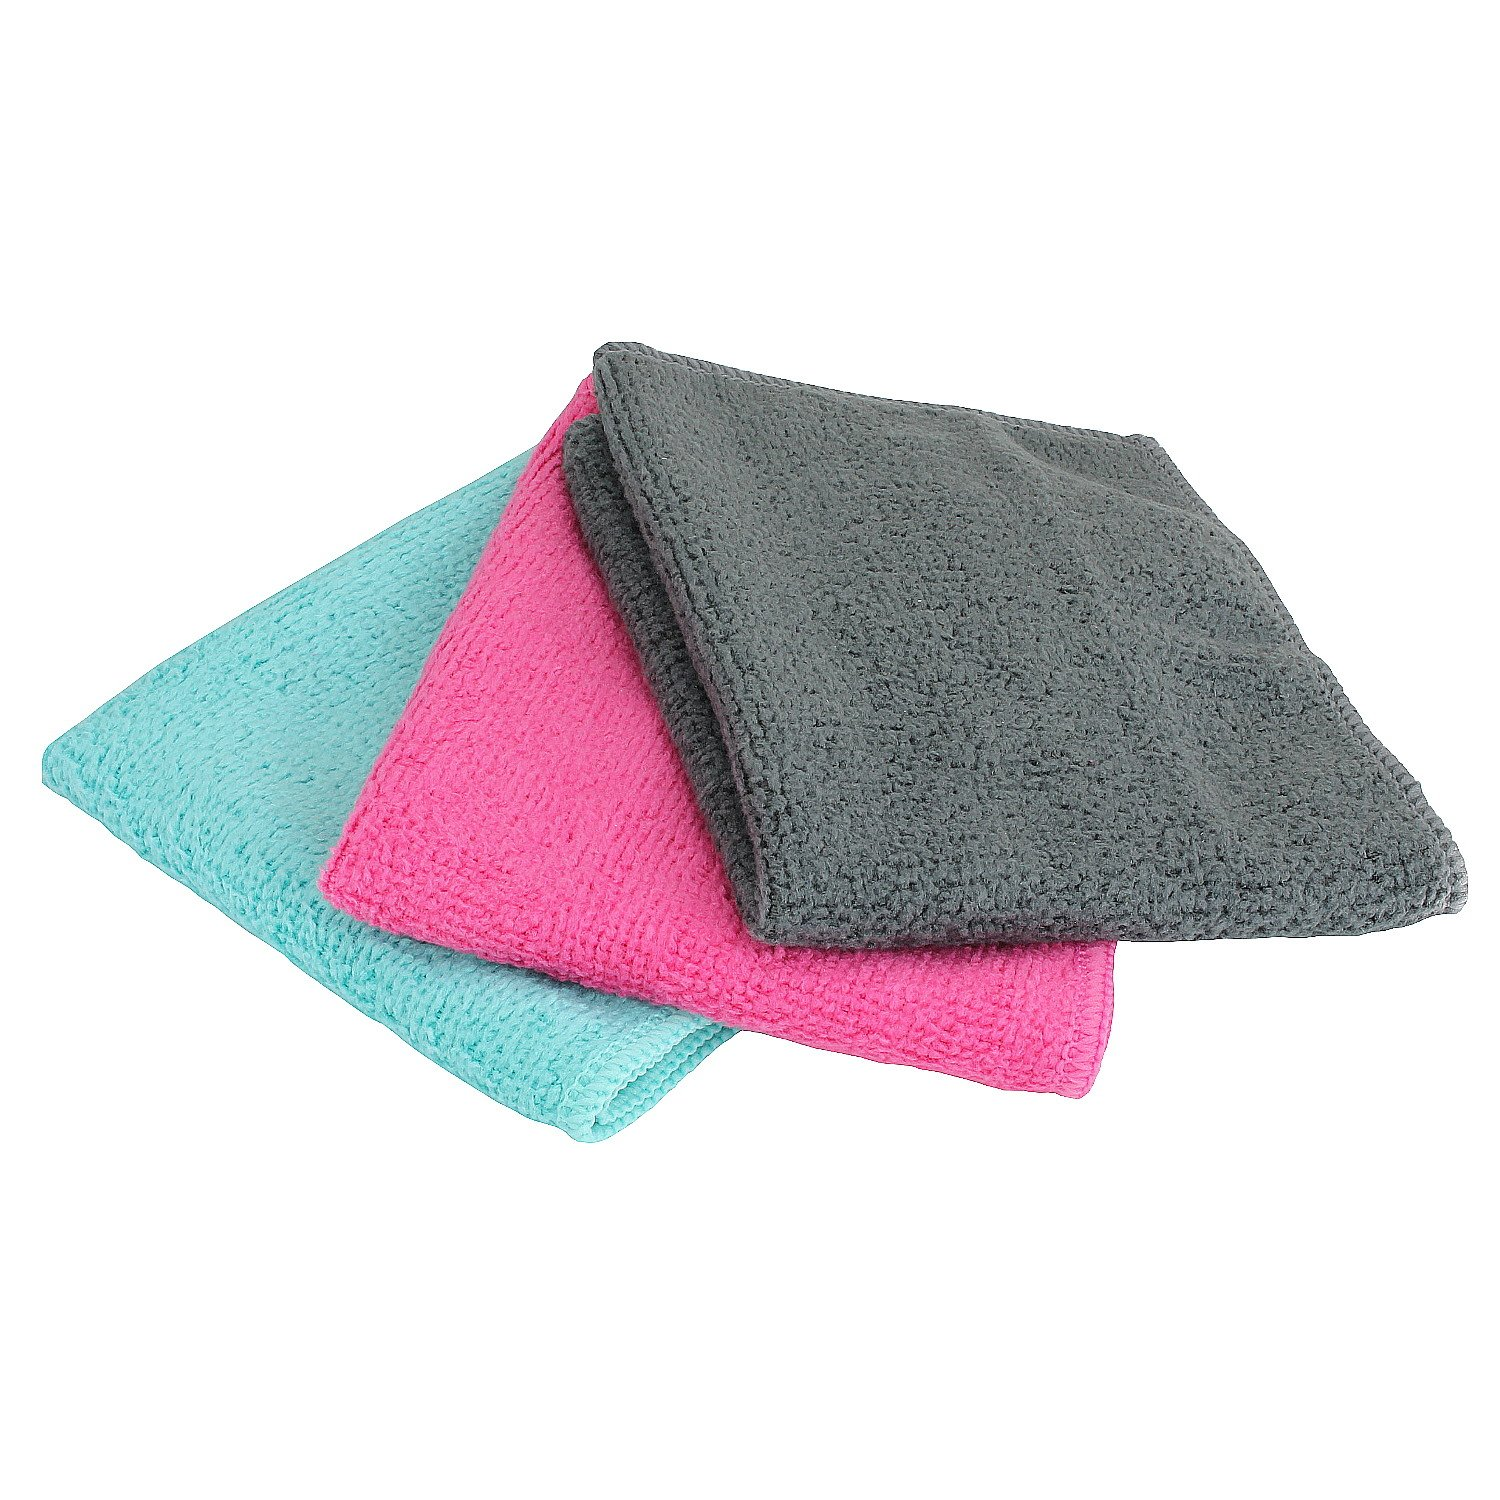 Face Cleansing Micro Fibre Travel Towel in Various Colours (Hot Pink Jelly, Mint Green Jelly/Anthracite) Reusable Cleaning Wipes for optimum care Soft Cosmetic for Gentle Skin Cleanser MACOSA HOME